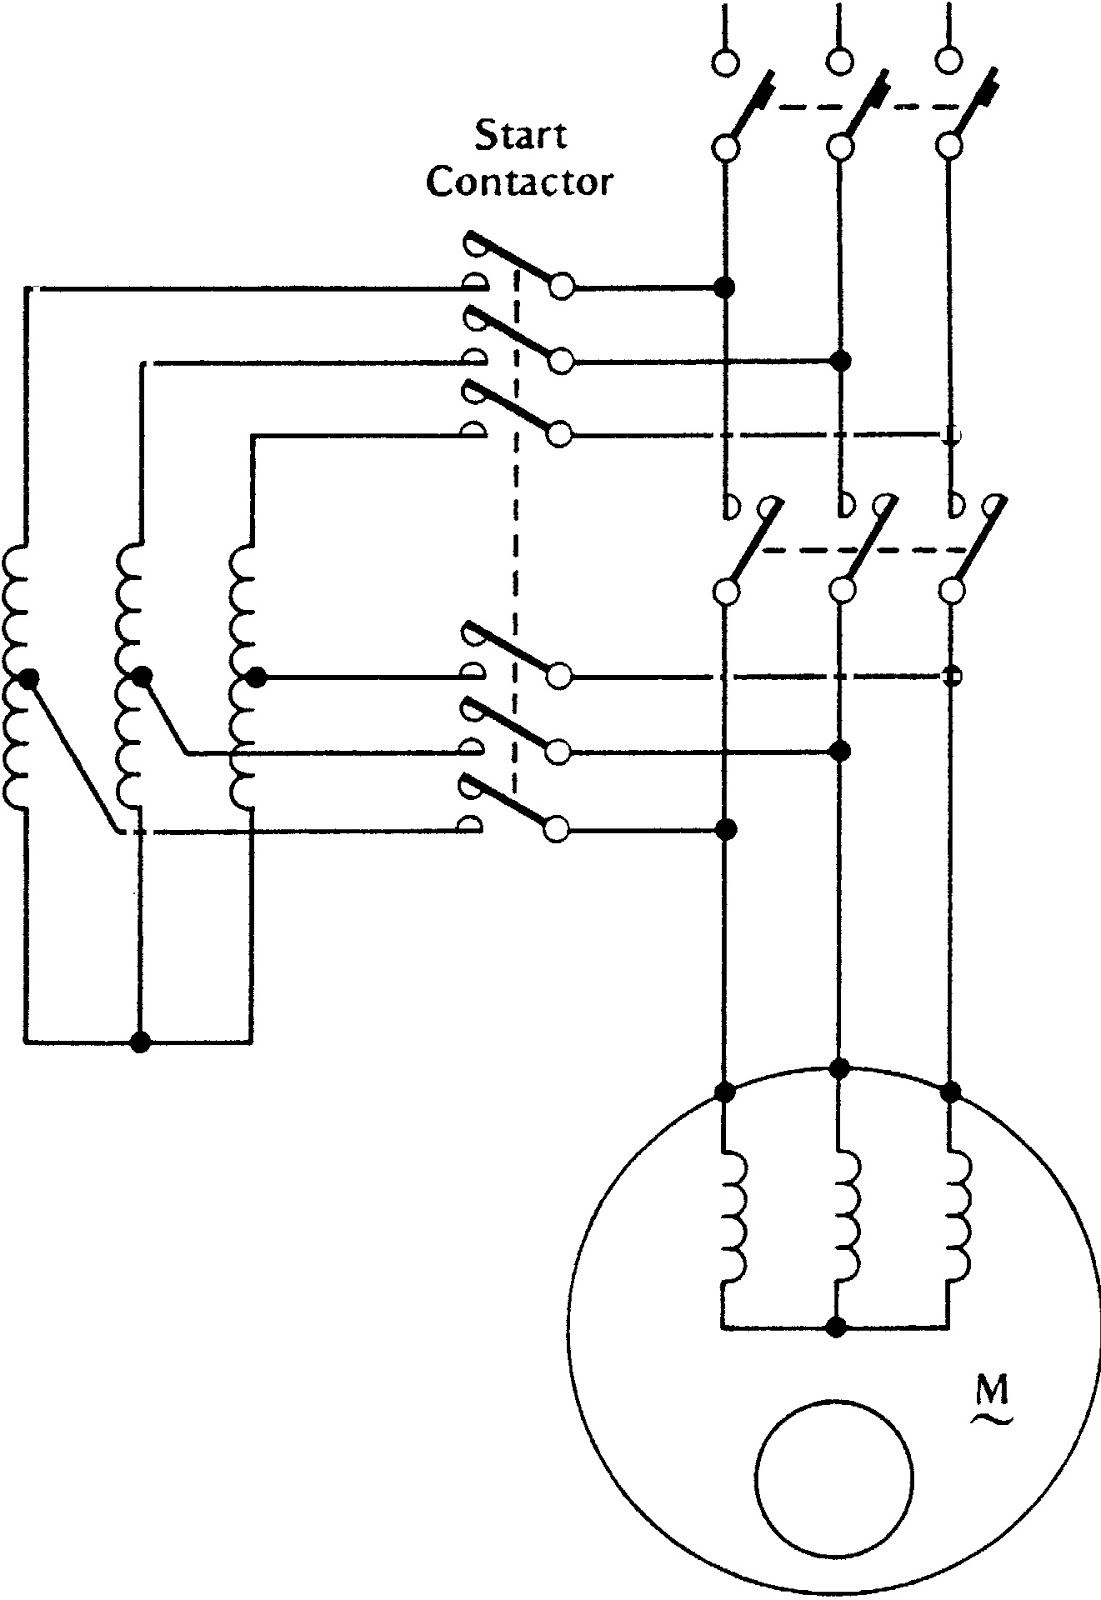 Wiring Diagram For A Single Phase Motor 230 V